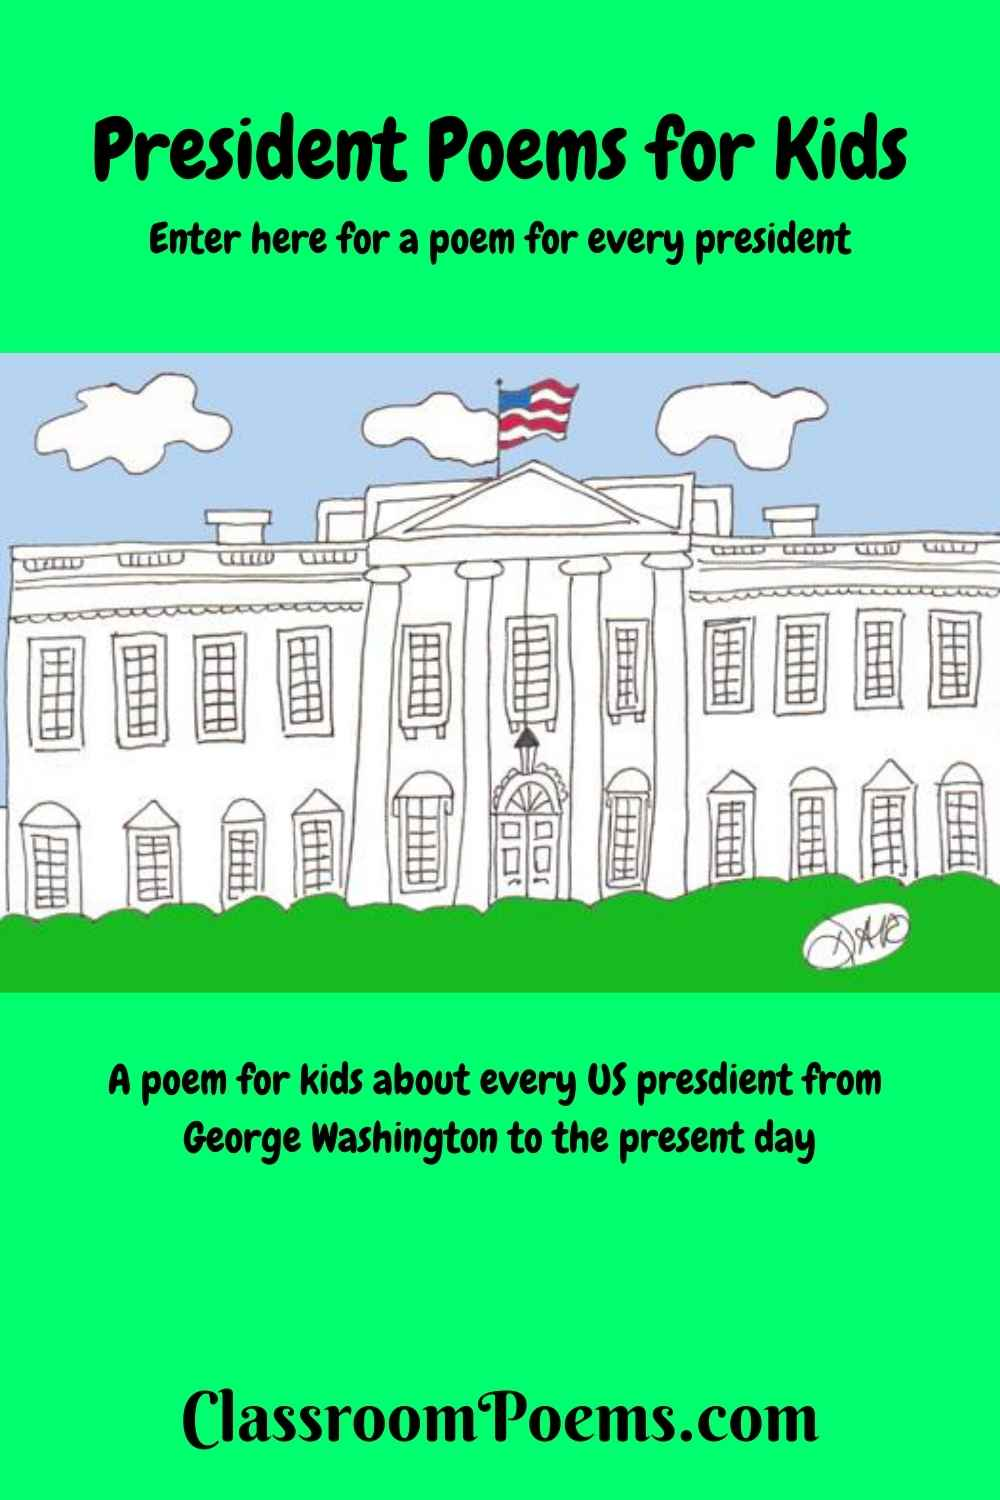 US President poems by Denise Rodgers on ClassroomPoems.com.